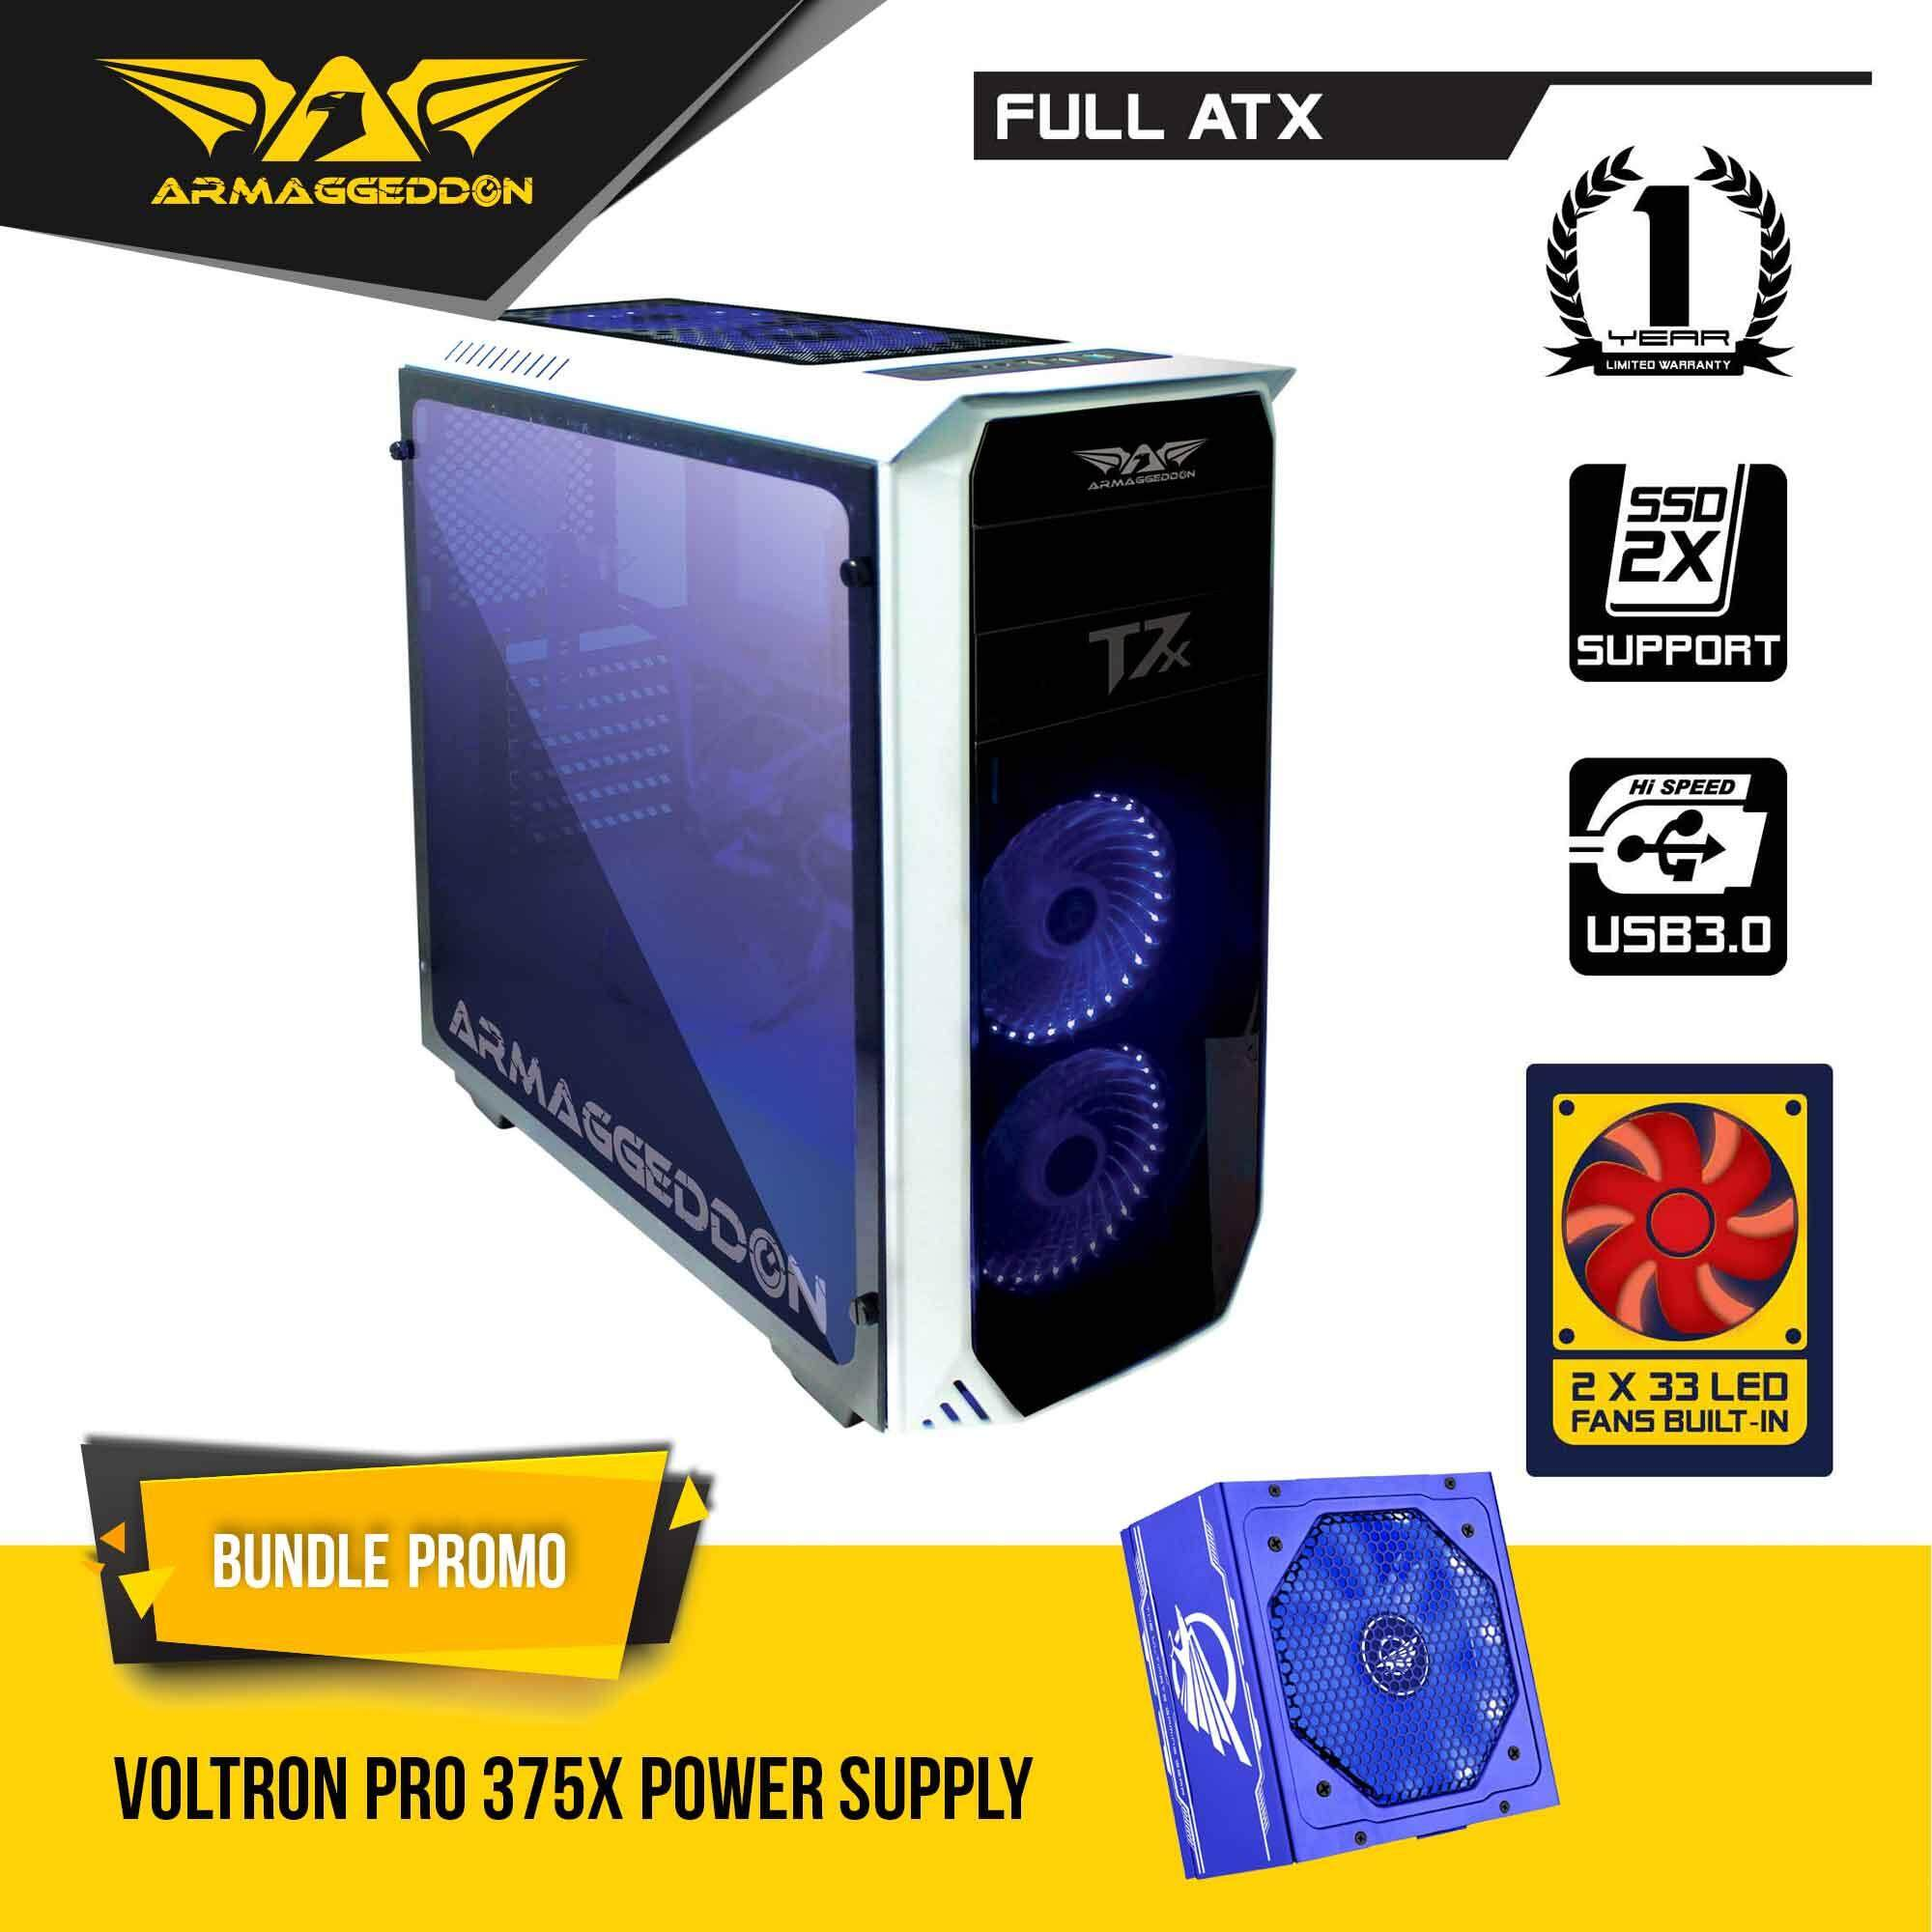 Armaggeddon T7x Full ATX Gaming Case with Voltron Pro Power Supply Bundle Promo Malaysia